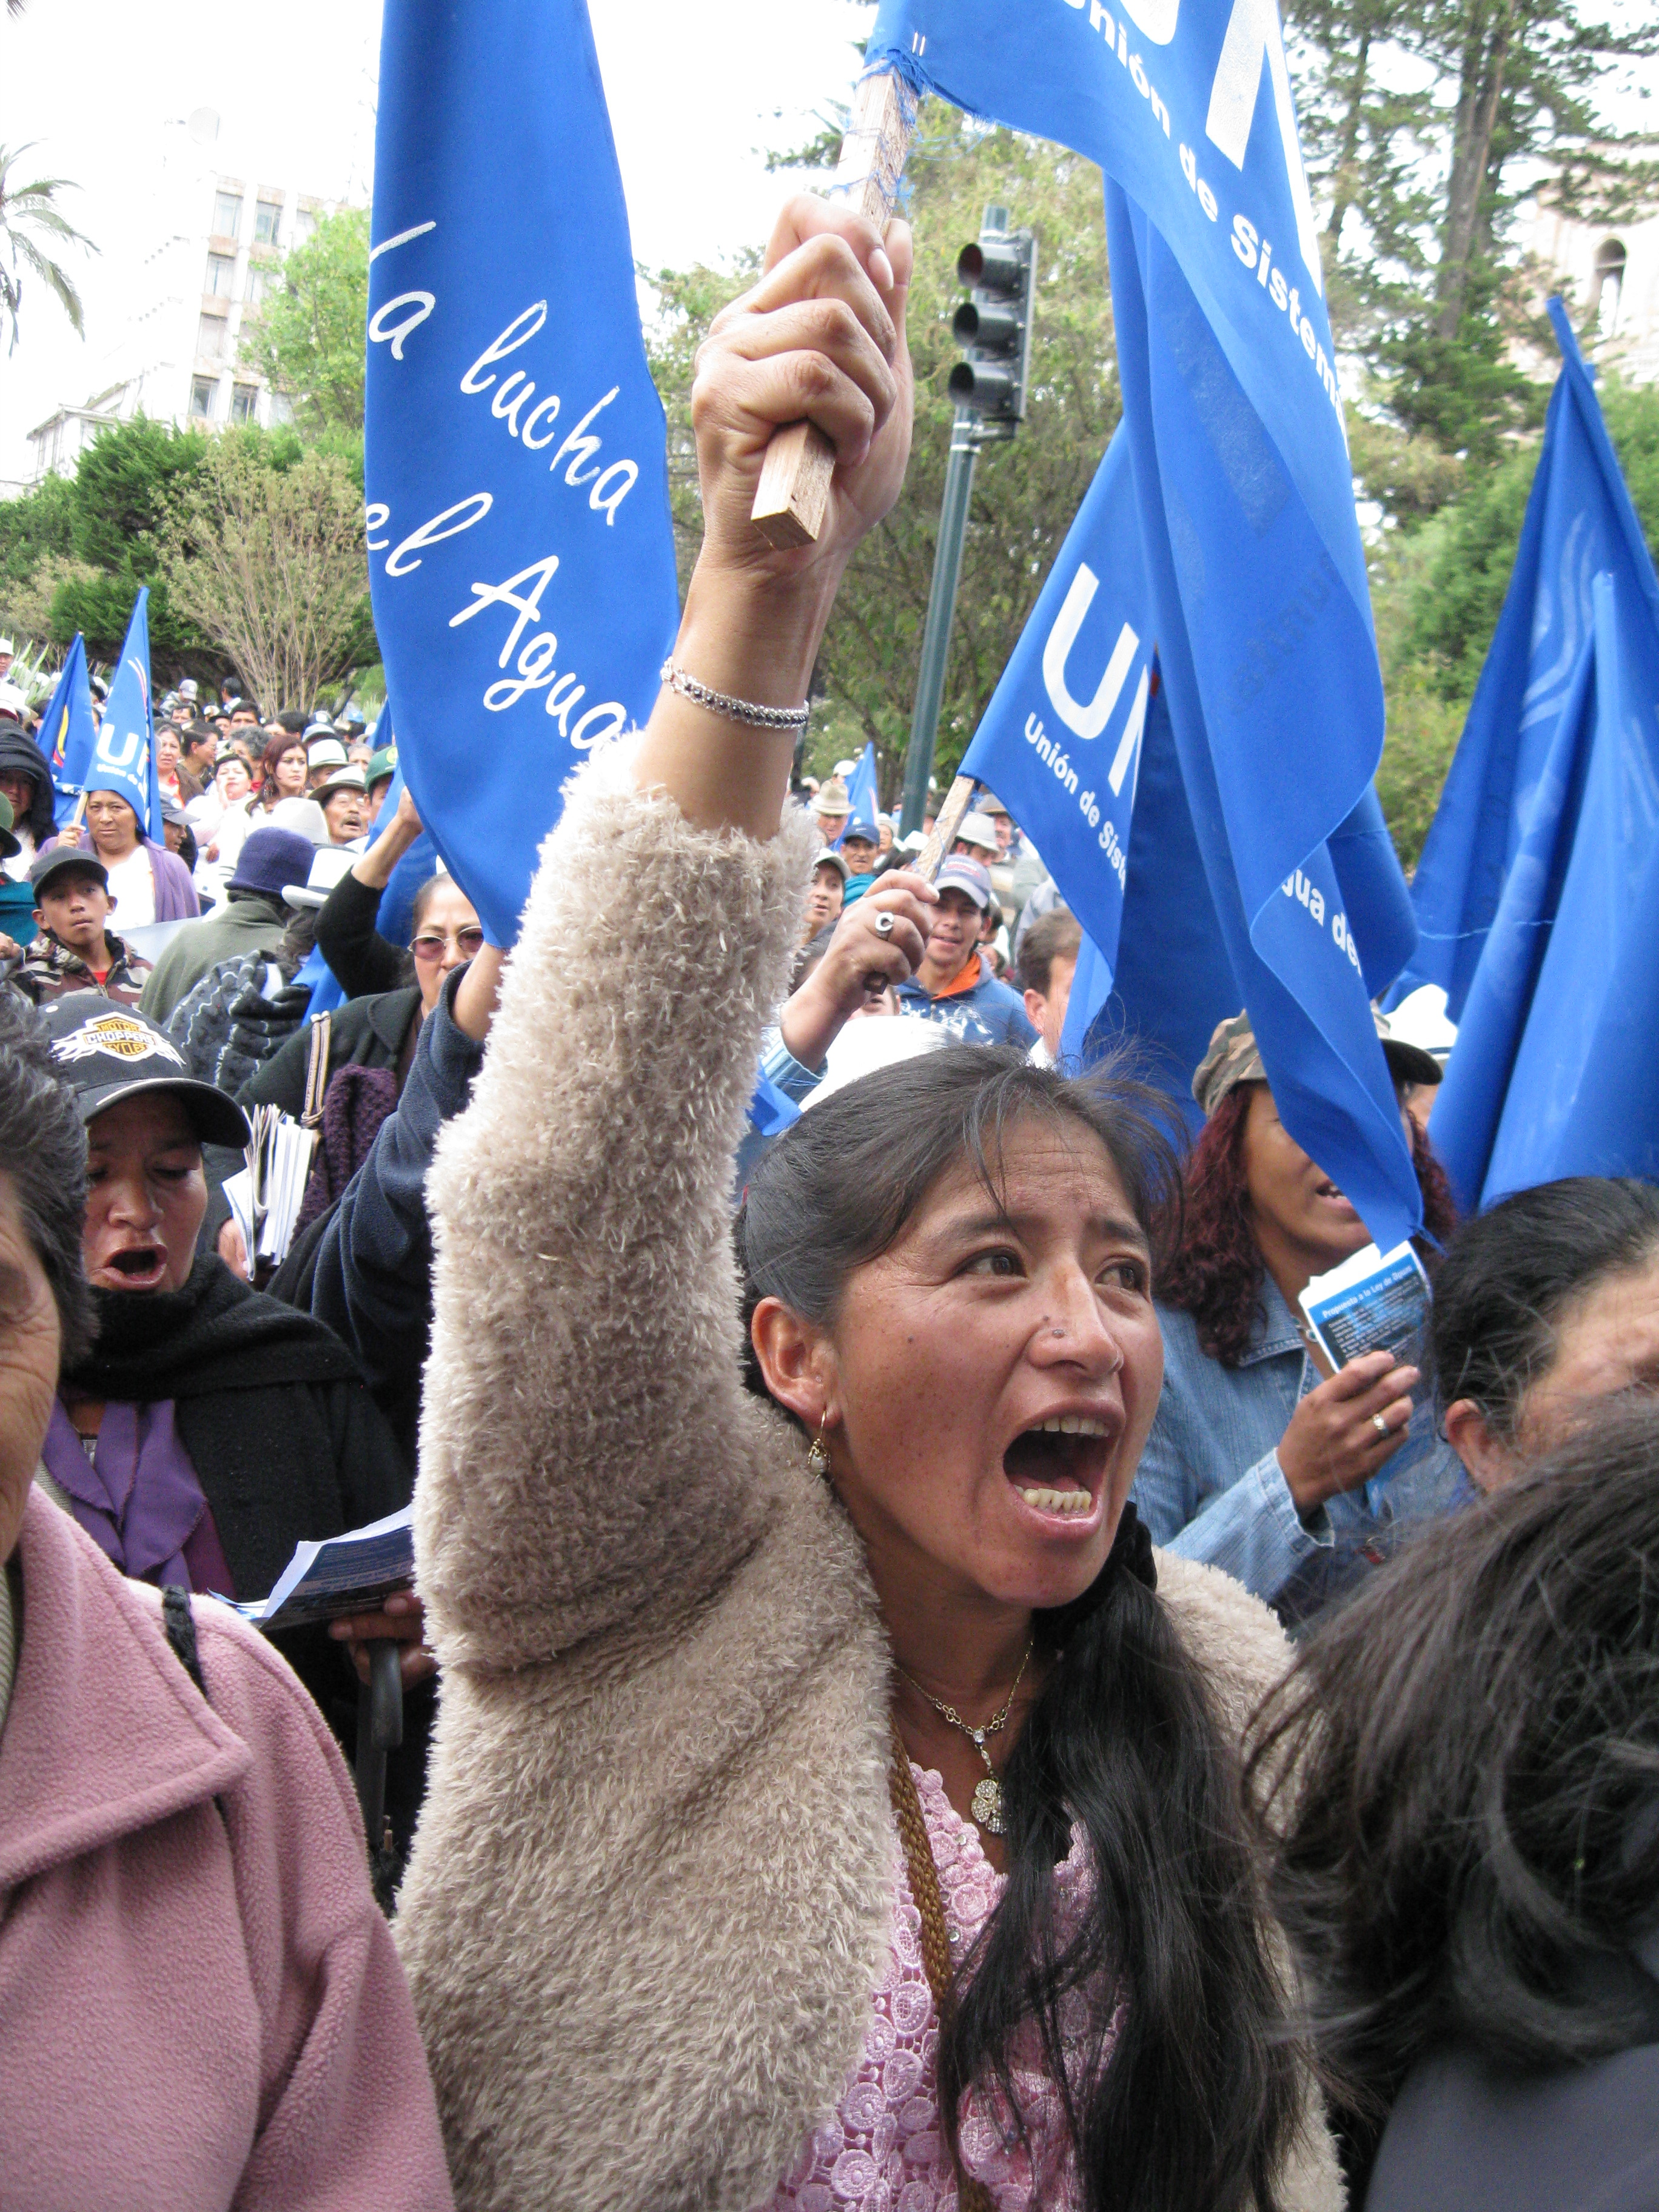 For over a decade, affected communities and local organizations, including the Union of Community Water Systems of the Province of Azuay, have protested a proposed gold and silver project that belongs to INV Metals (originally IAMGOLD) that threatens precious water supplies and the páramo known as Kimsacocha. Photo: MiningWatch